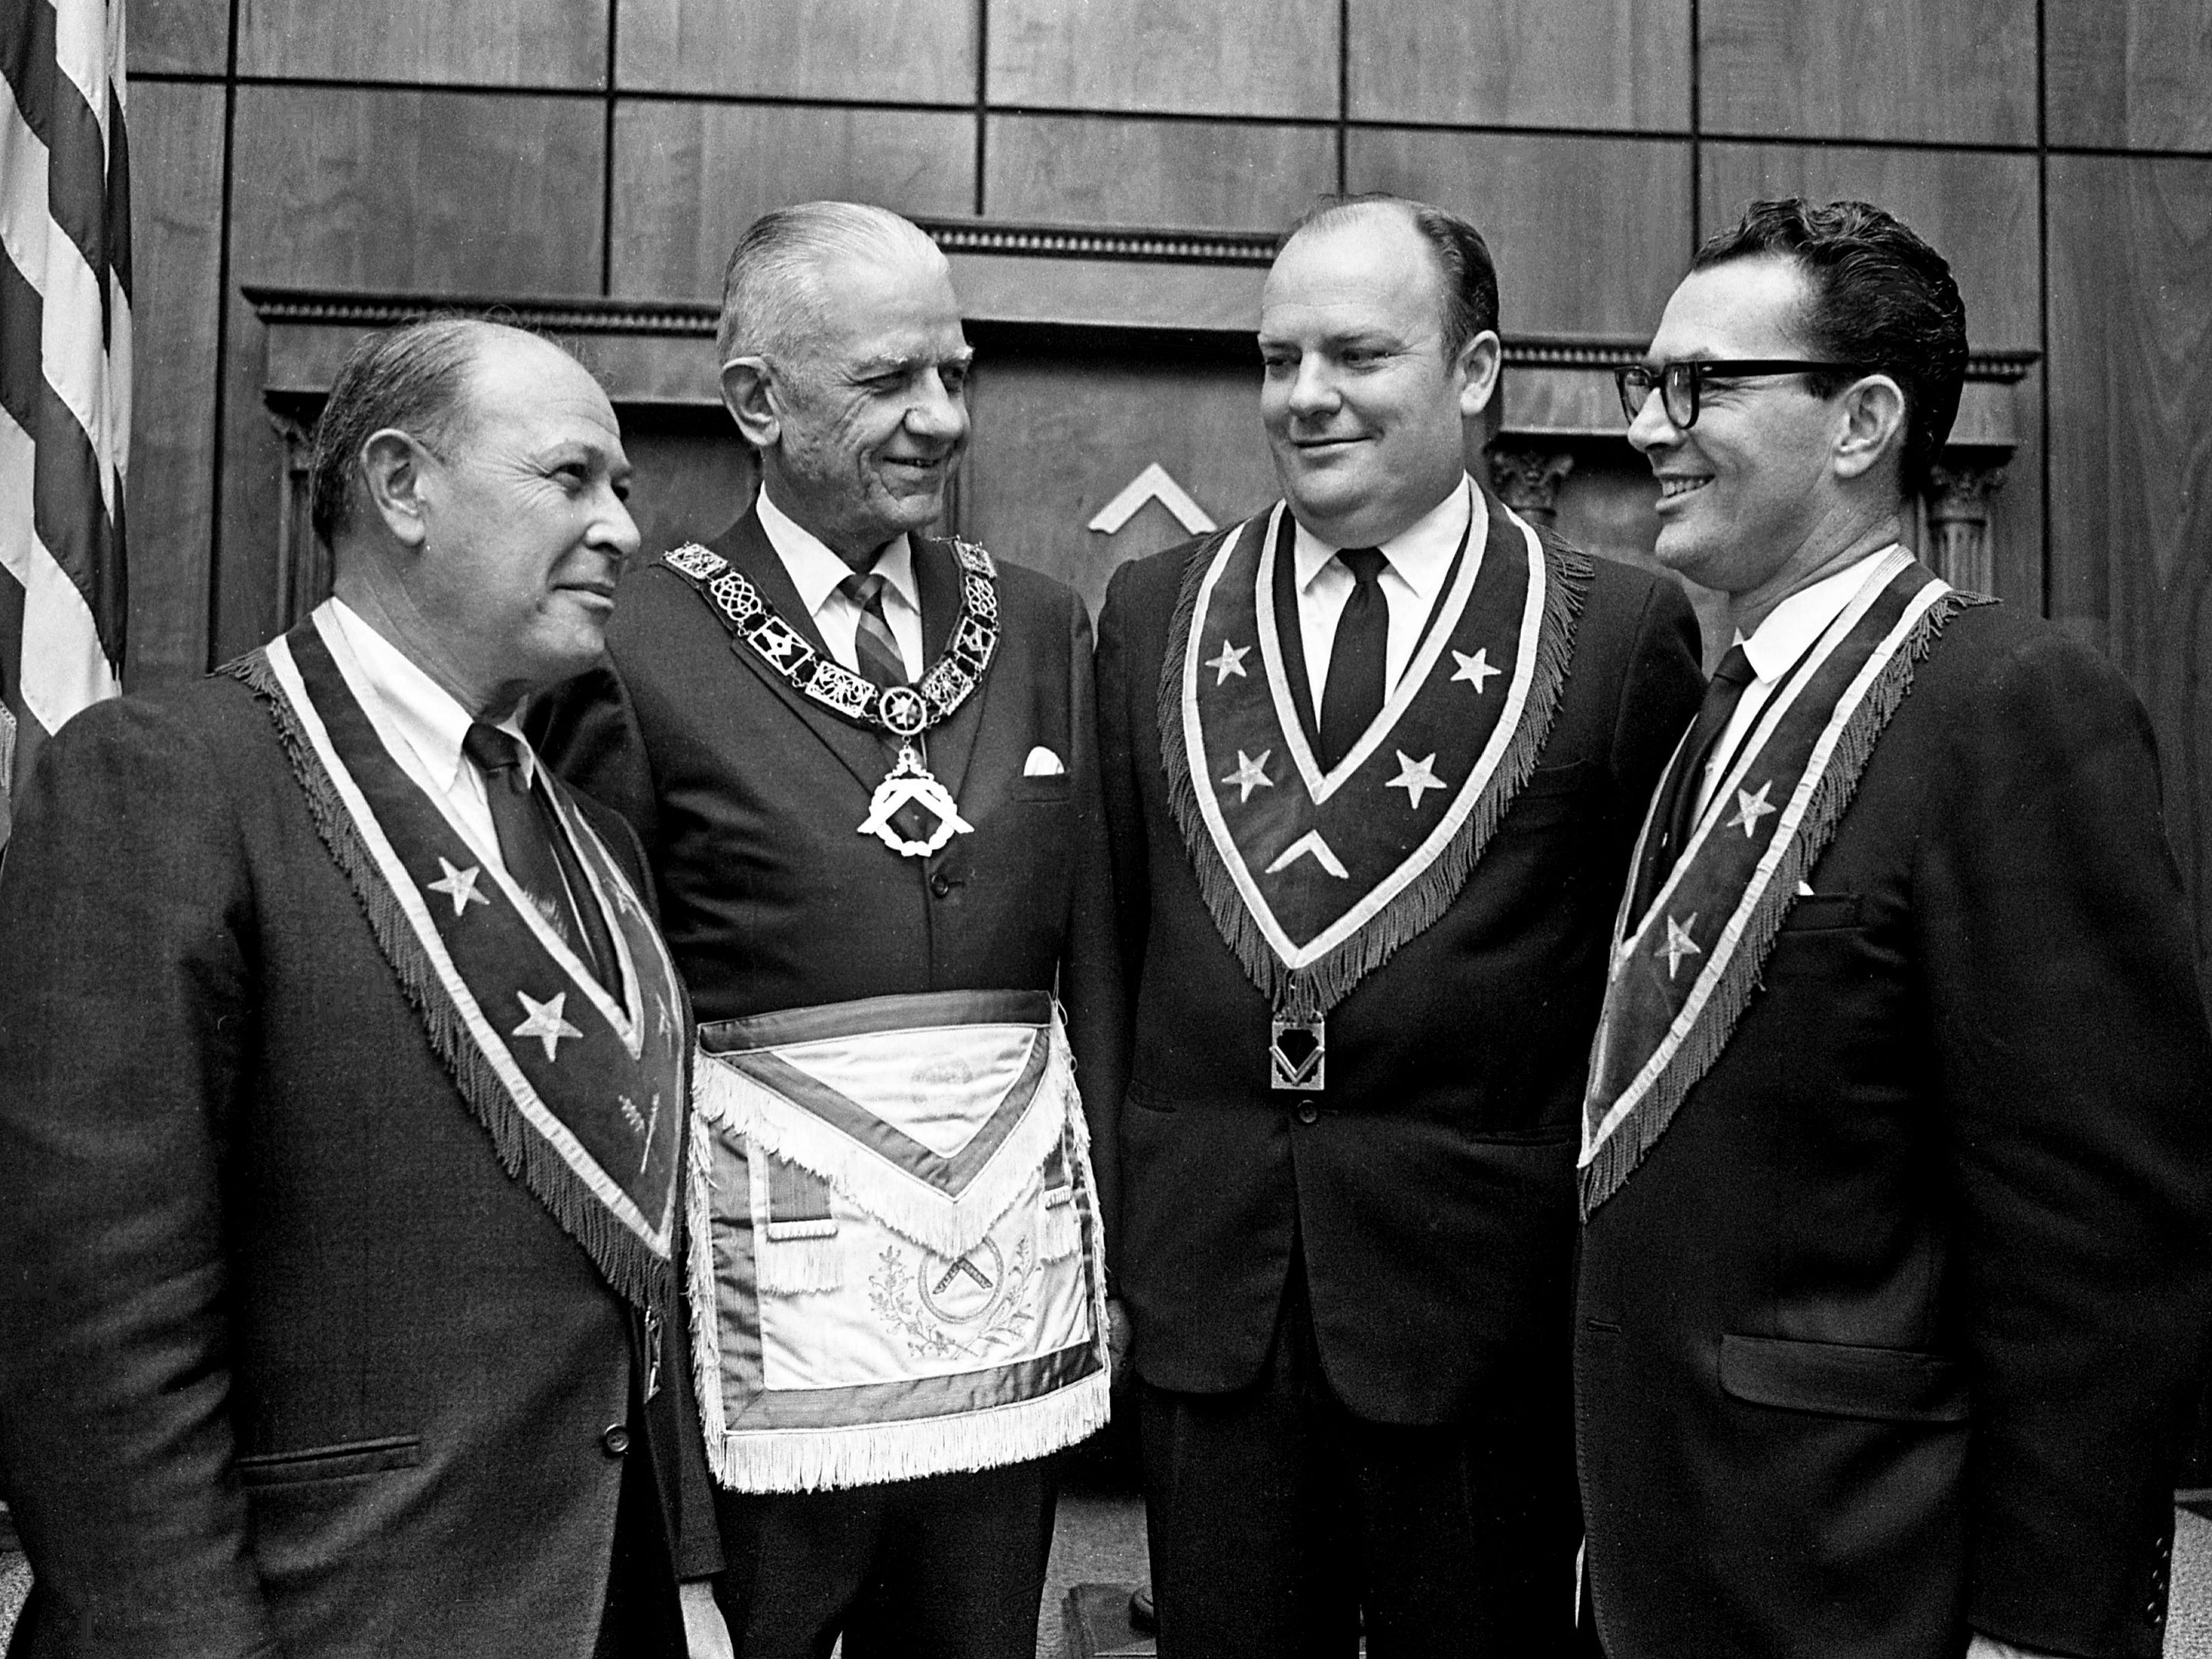 Members of Cumberland Lodge No. 8 F & A.M. discuss plans during dedication ceremonies of the lodge's new temple on Sloan Road on Dec. 7, 1968. They are Louis Steinberg, left, secretary; John Riley, deputy grand master; J.E. Bennett, worshipful master; and Metro Sheriff John Frazier, past master.